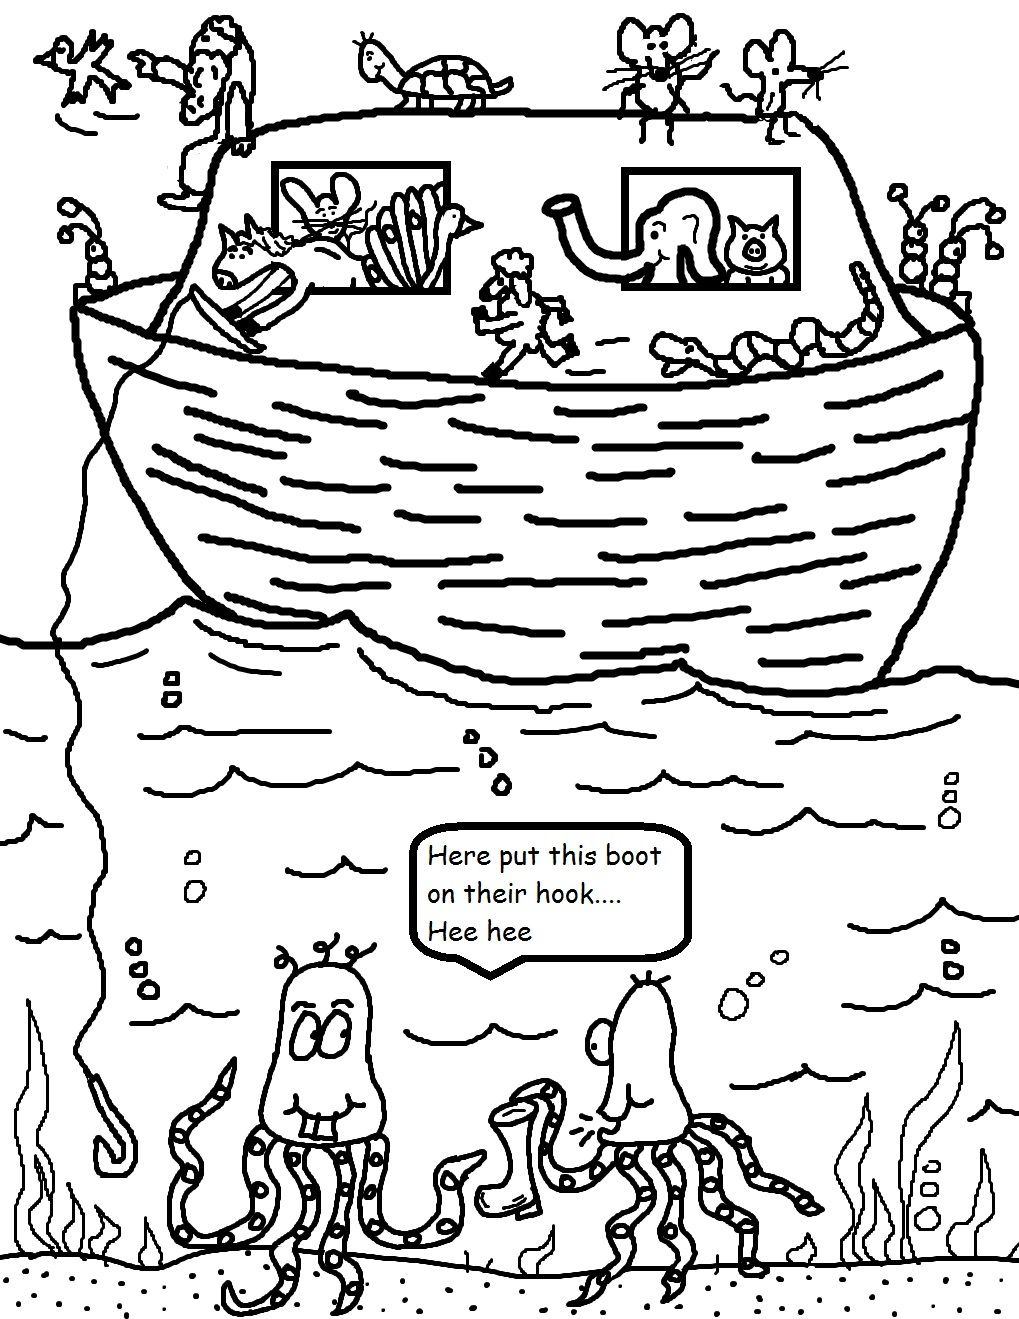 noah's ark coloring pages - Noahs Ark Coloring Pages Print